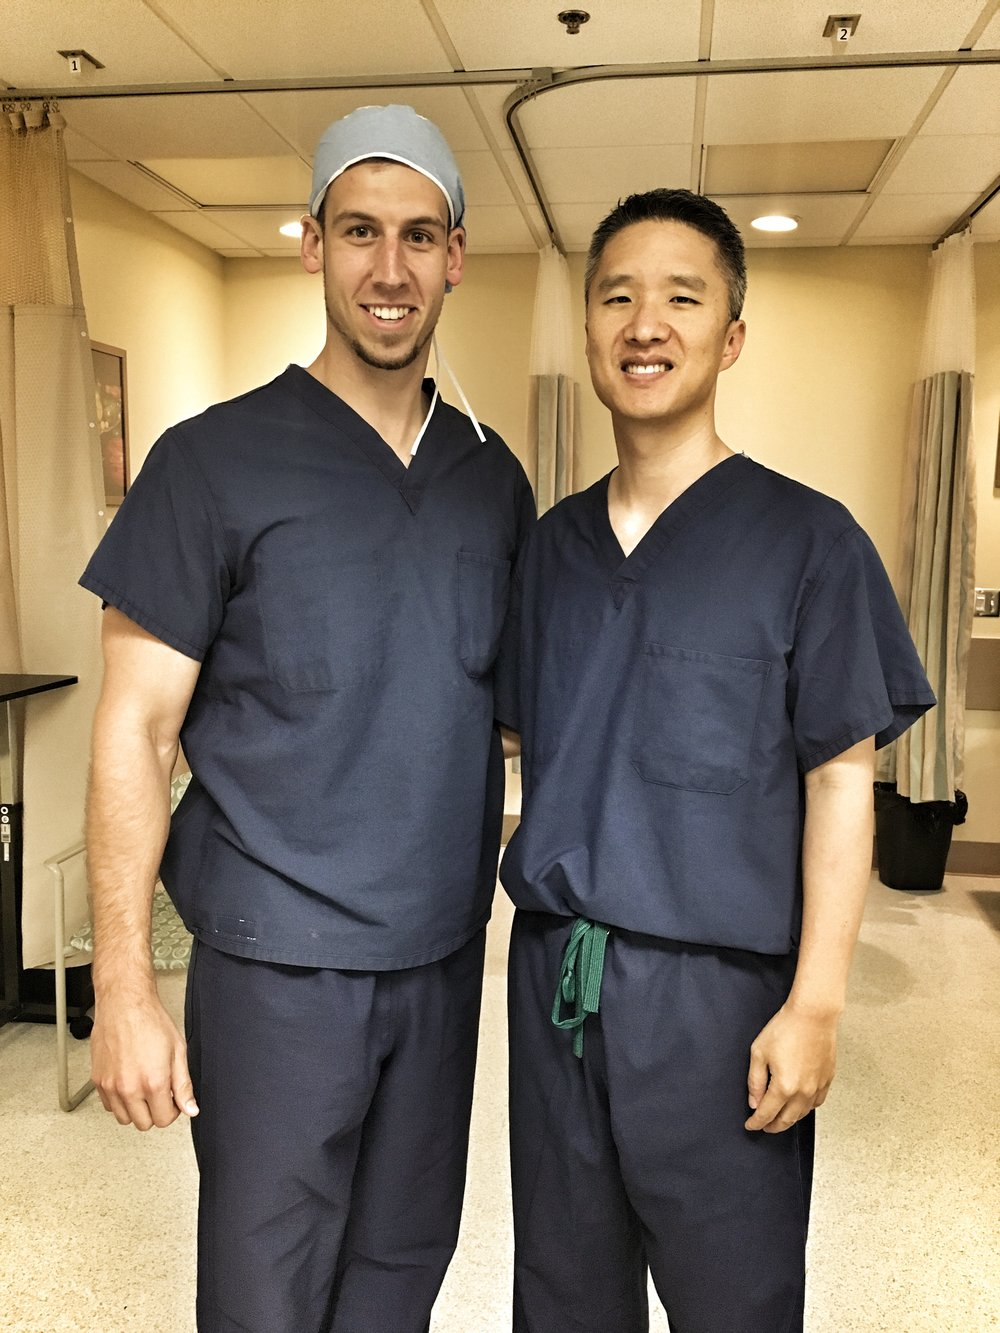 Victor & Dr. Koo - Victor scrubbed in for a day with Dr. Koo in the OR.June 2017